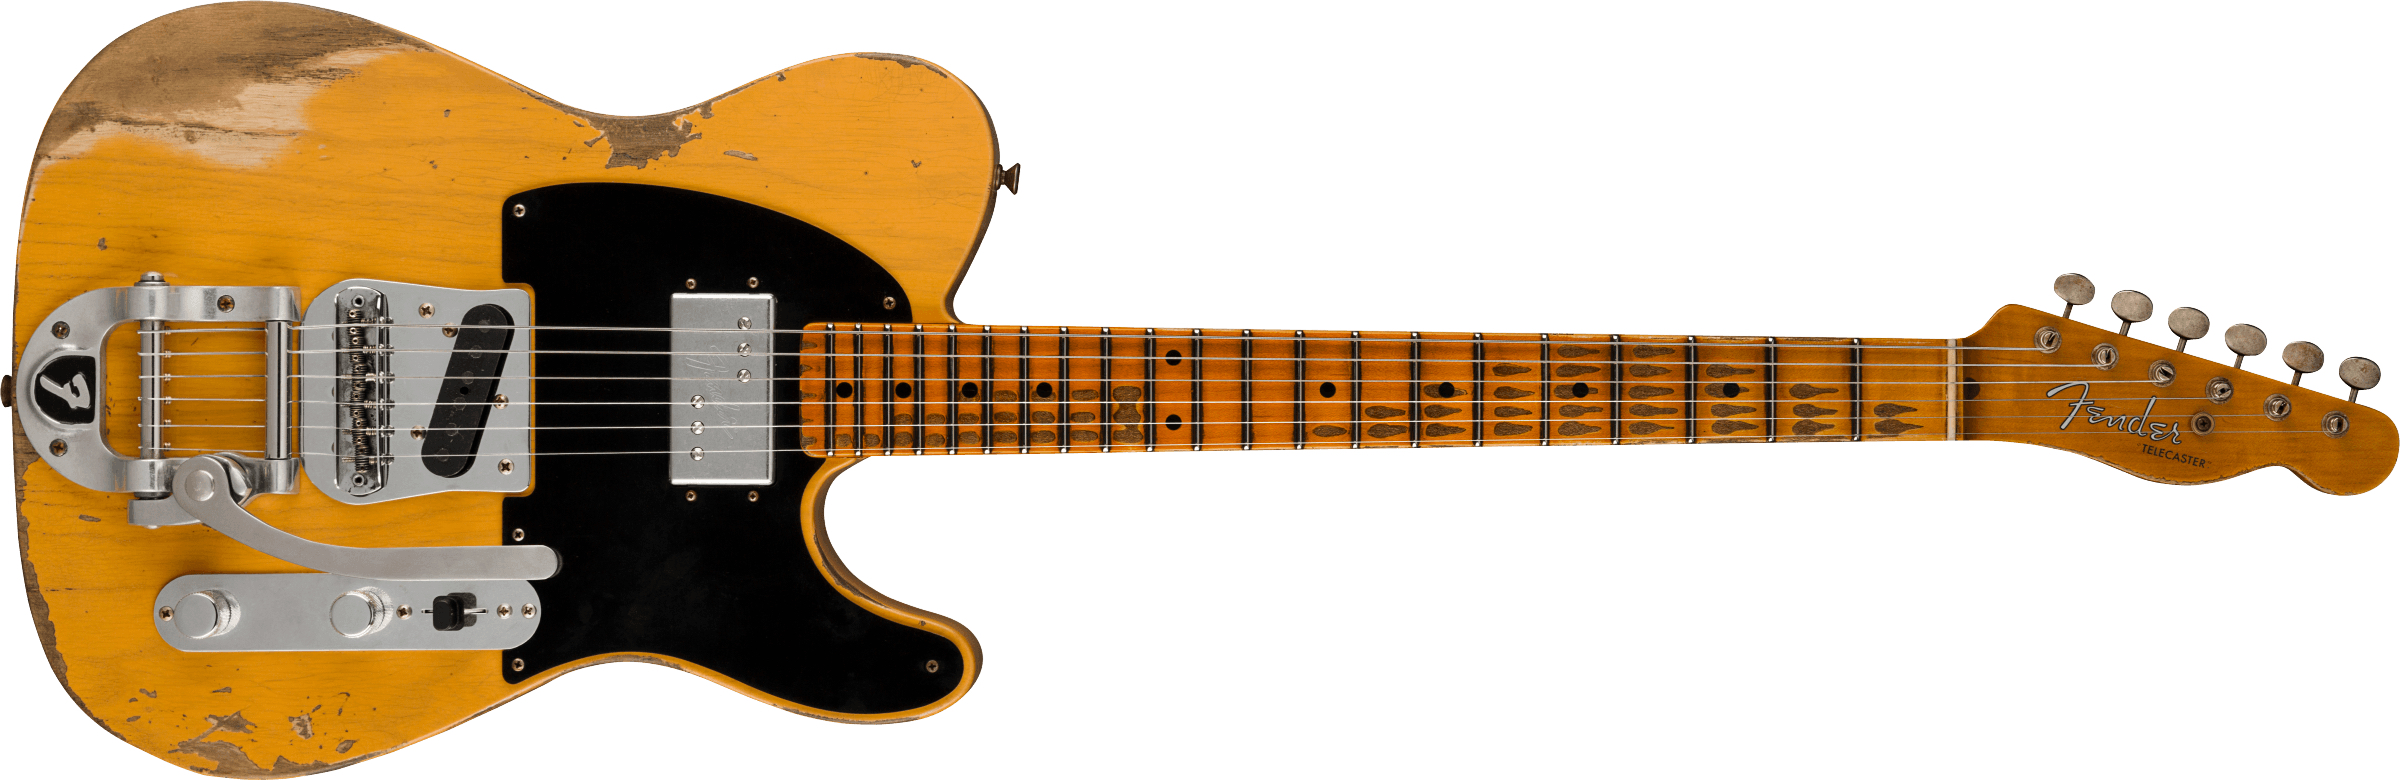 FENDER-Limited-Edition-51-HS-Telecaster-Heavy-Relic-Maple-Fingerboard-Aged-Butterscotch-Blonde-sku-571005341